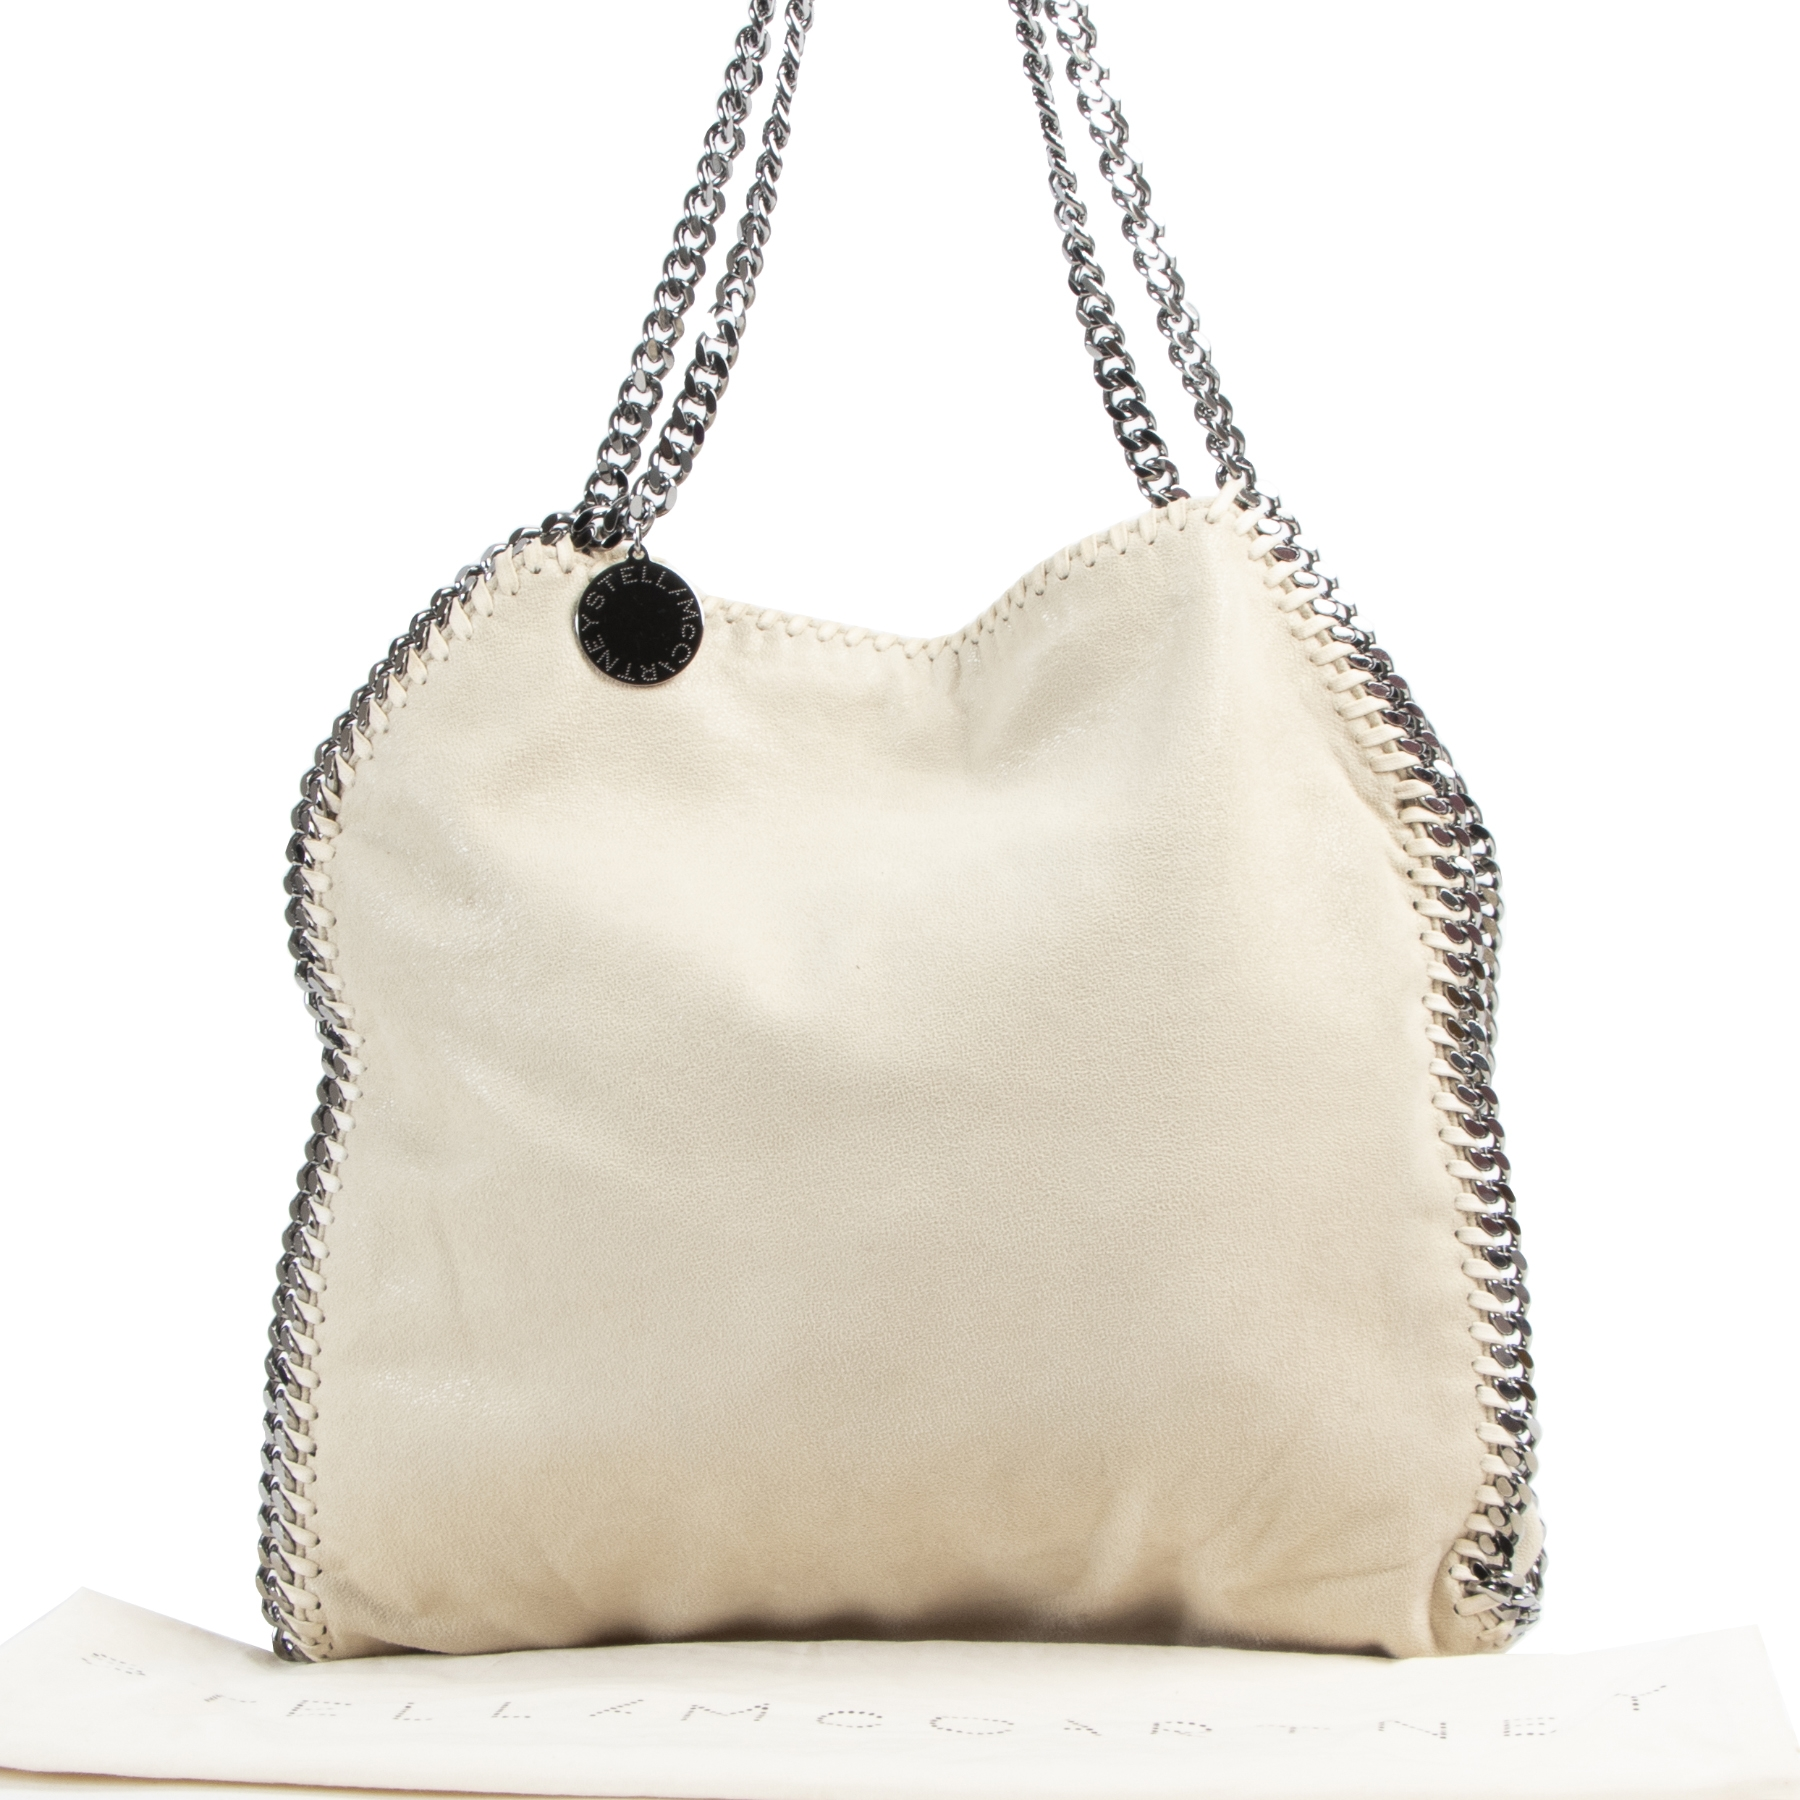 Stella McCartney Beige Falabella Shoulder Bag